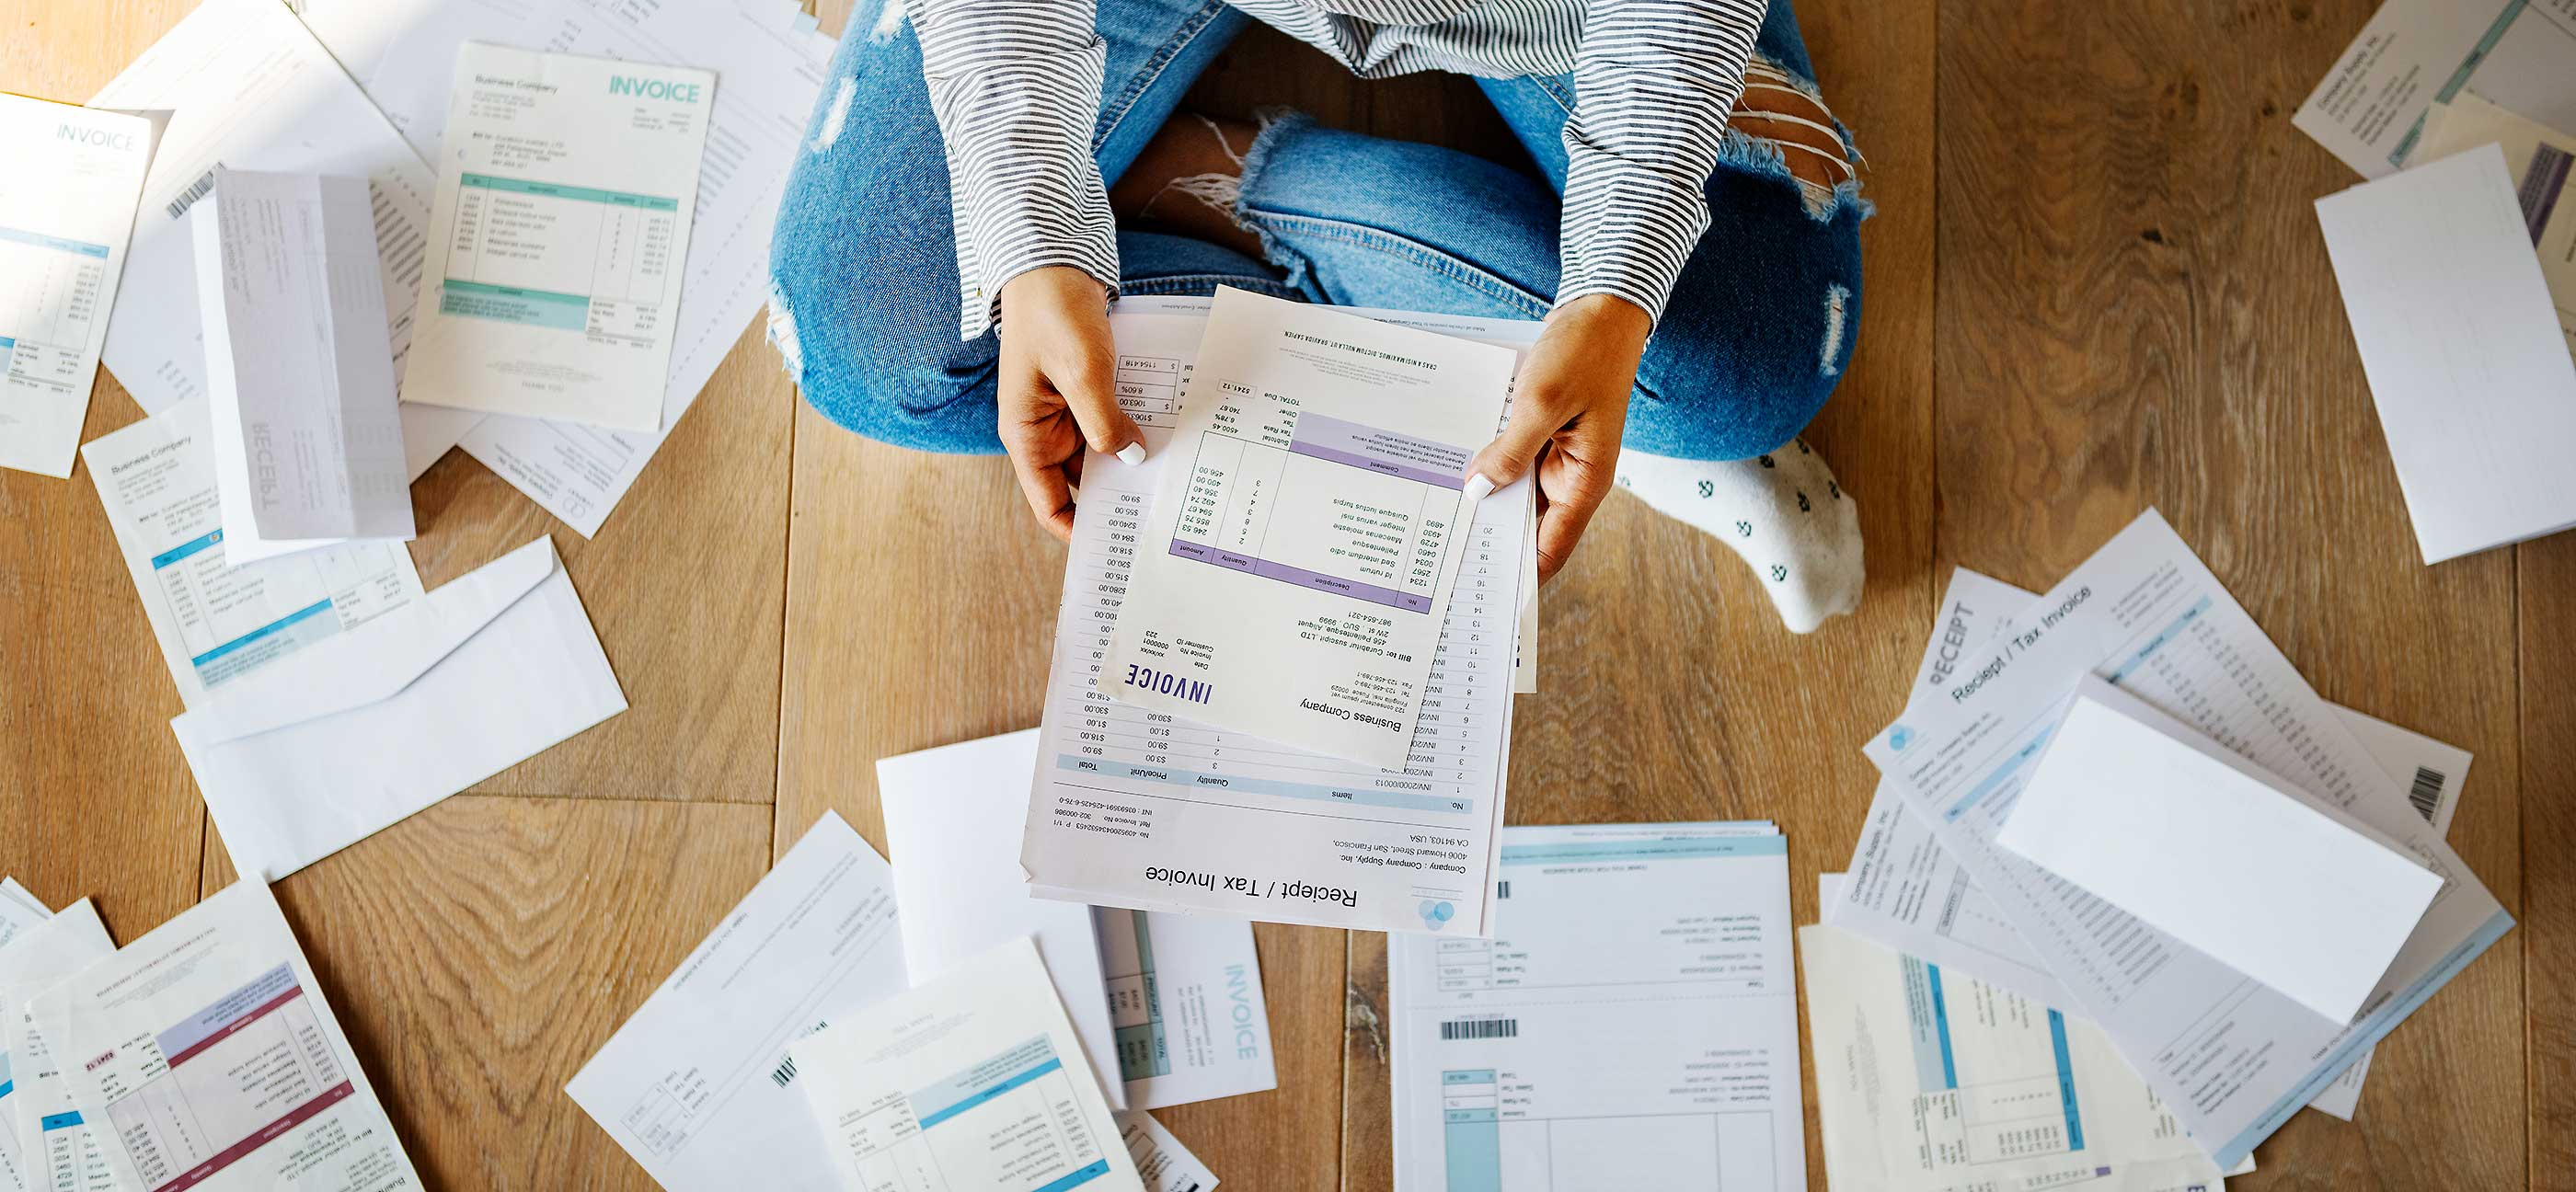 Forgiving Student Loan Debt Leads to Better Jobs, Stronger Consumers